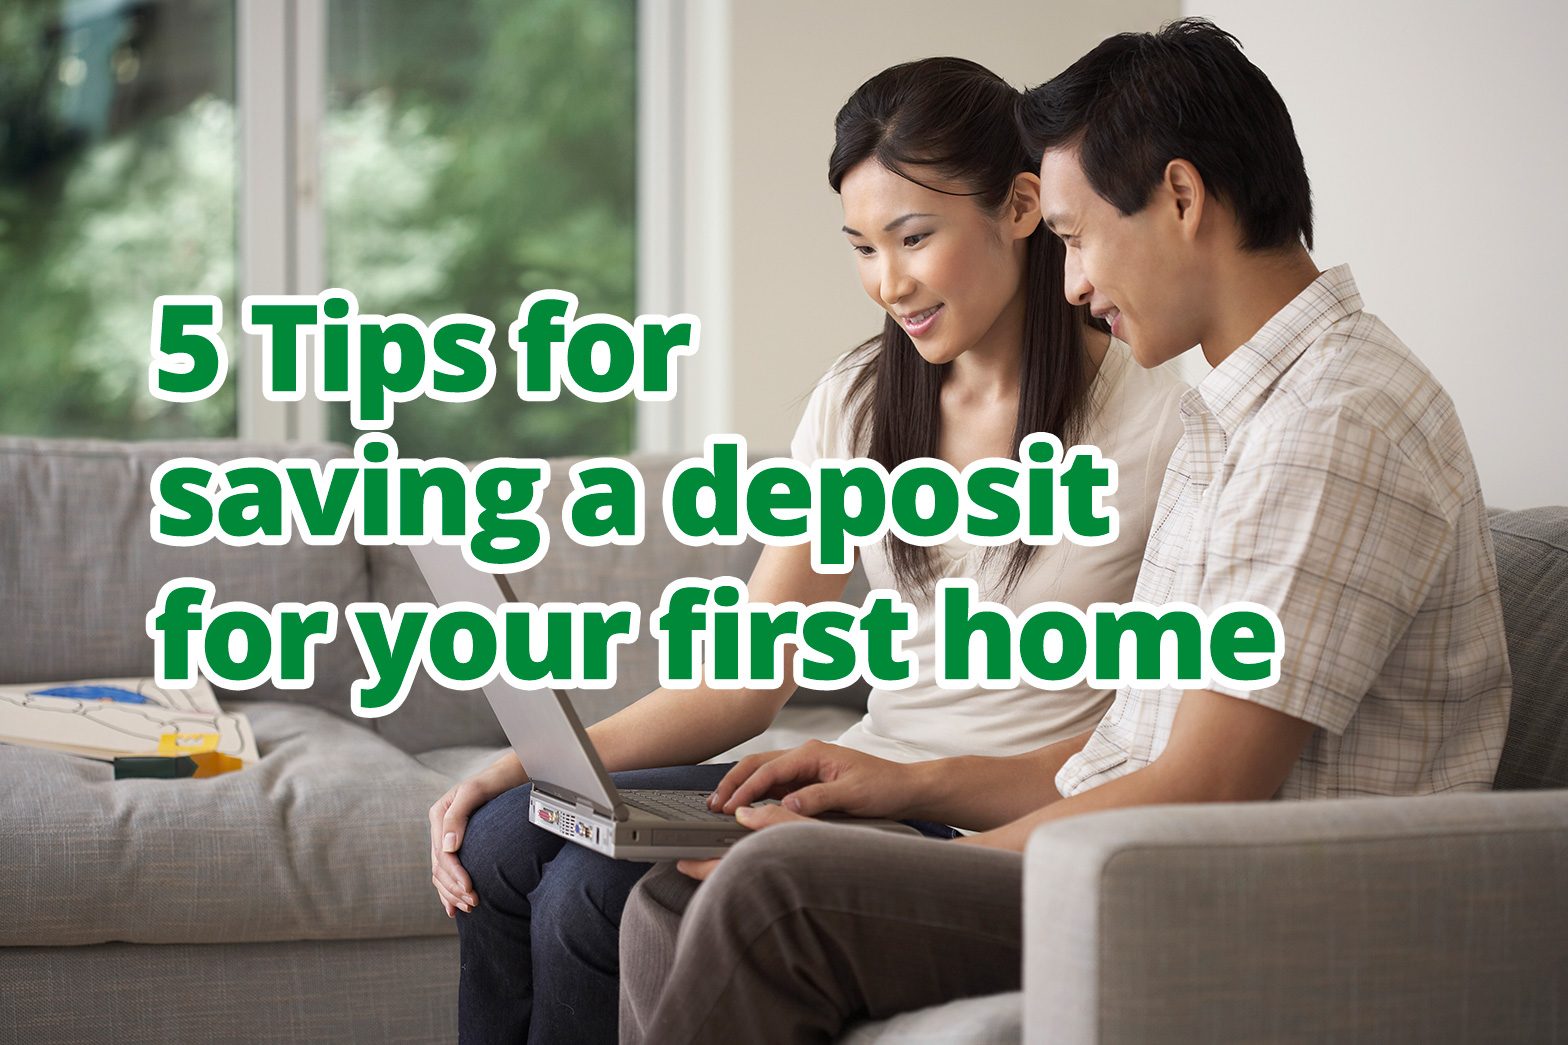 5 Tips for saving a deposit for your first home